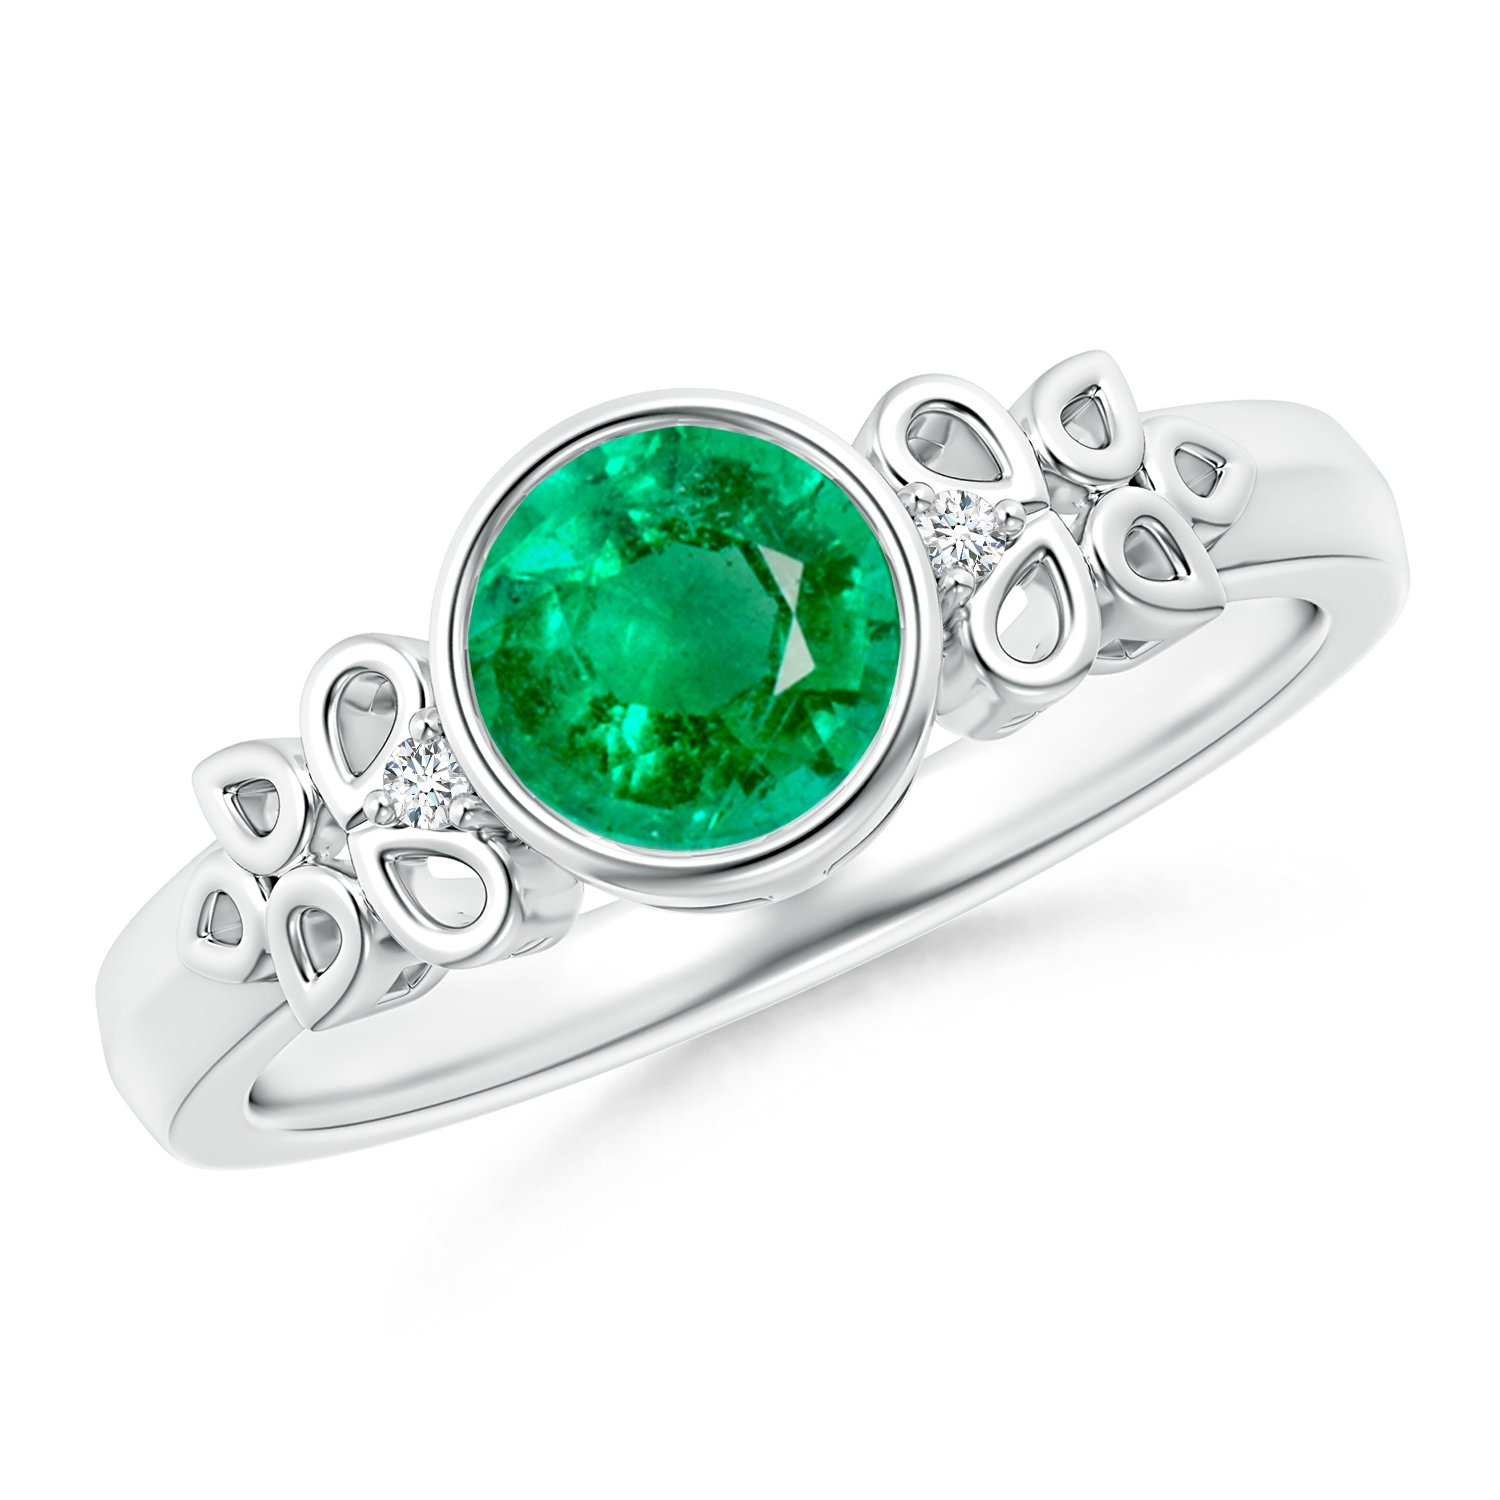 May Birthstone - Vintage Round Emerald Bezel Ring for Women with Diamond Accents in 14K White Gold (6mm Emerald)